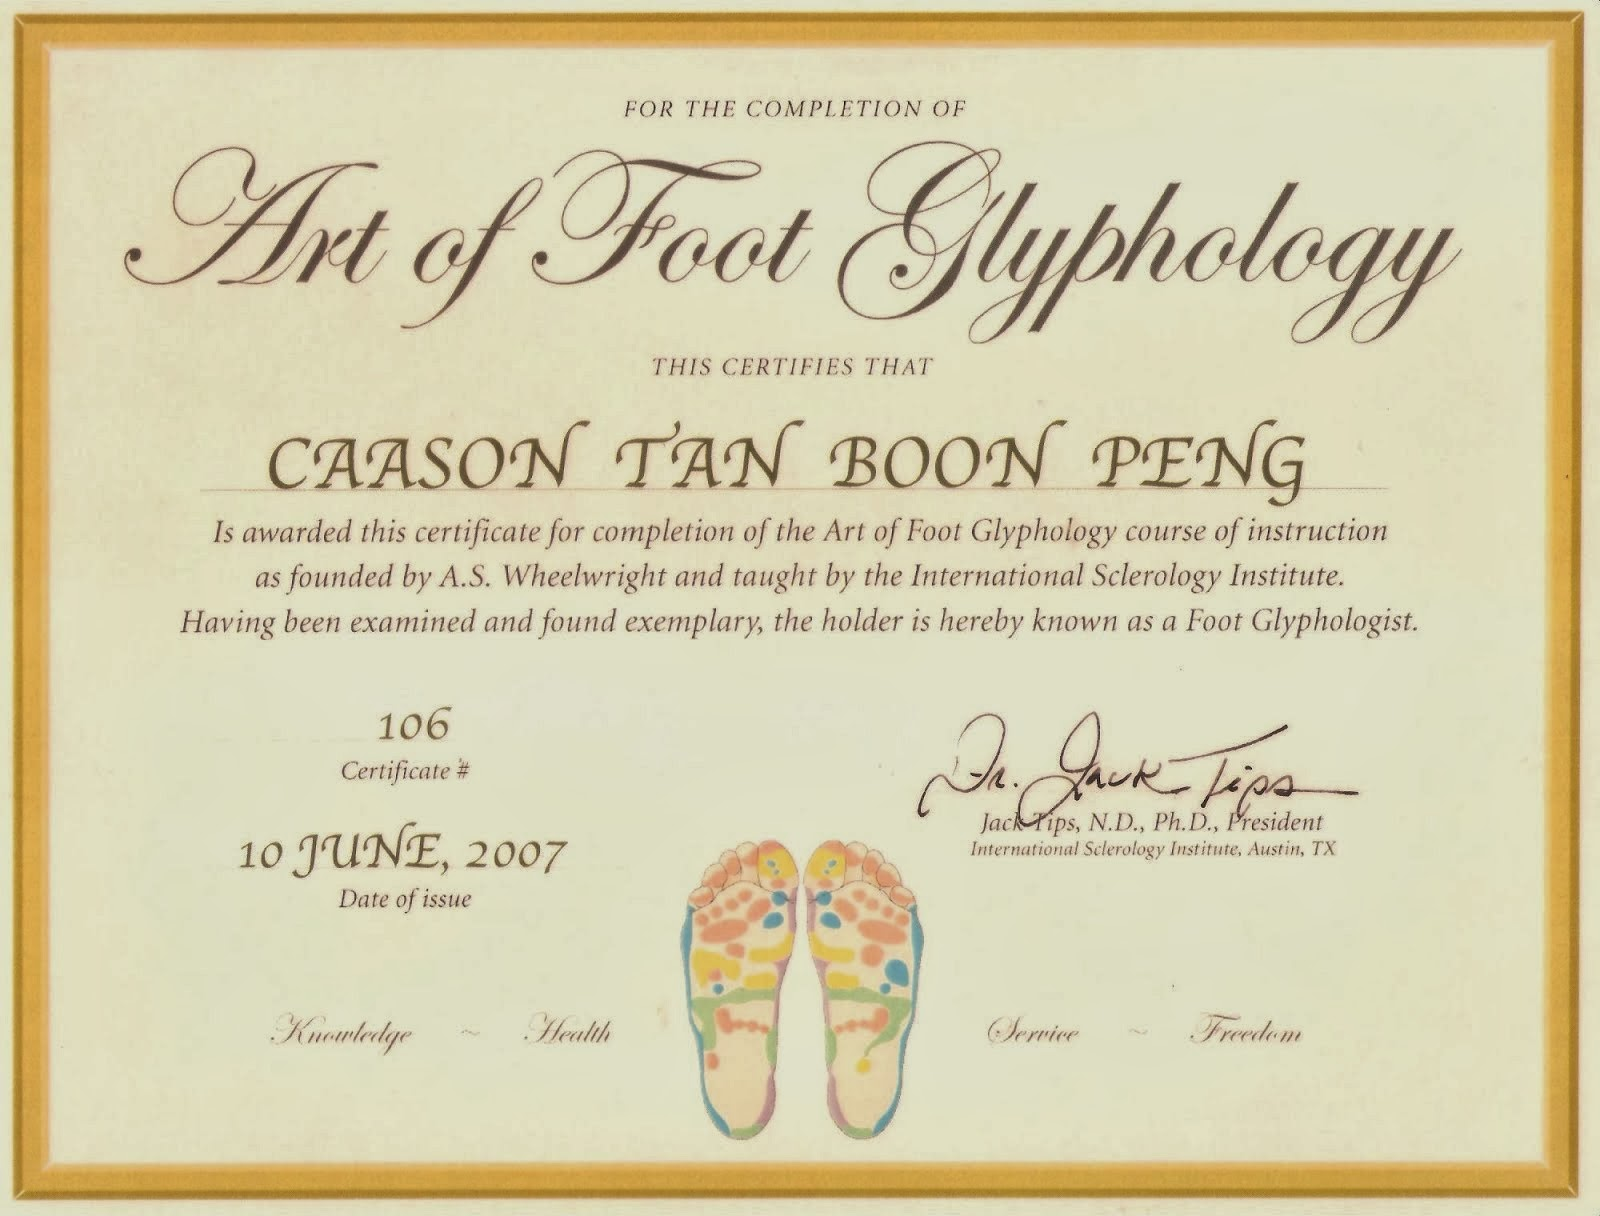 Certified Foot Glyphologist